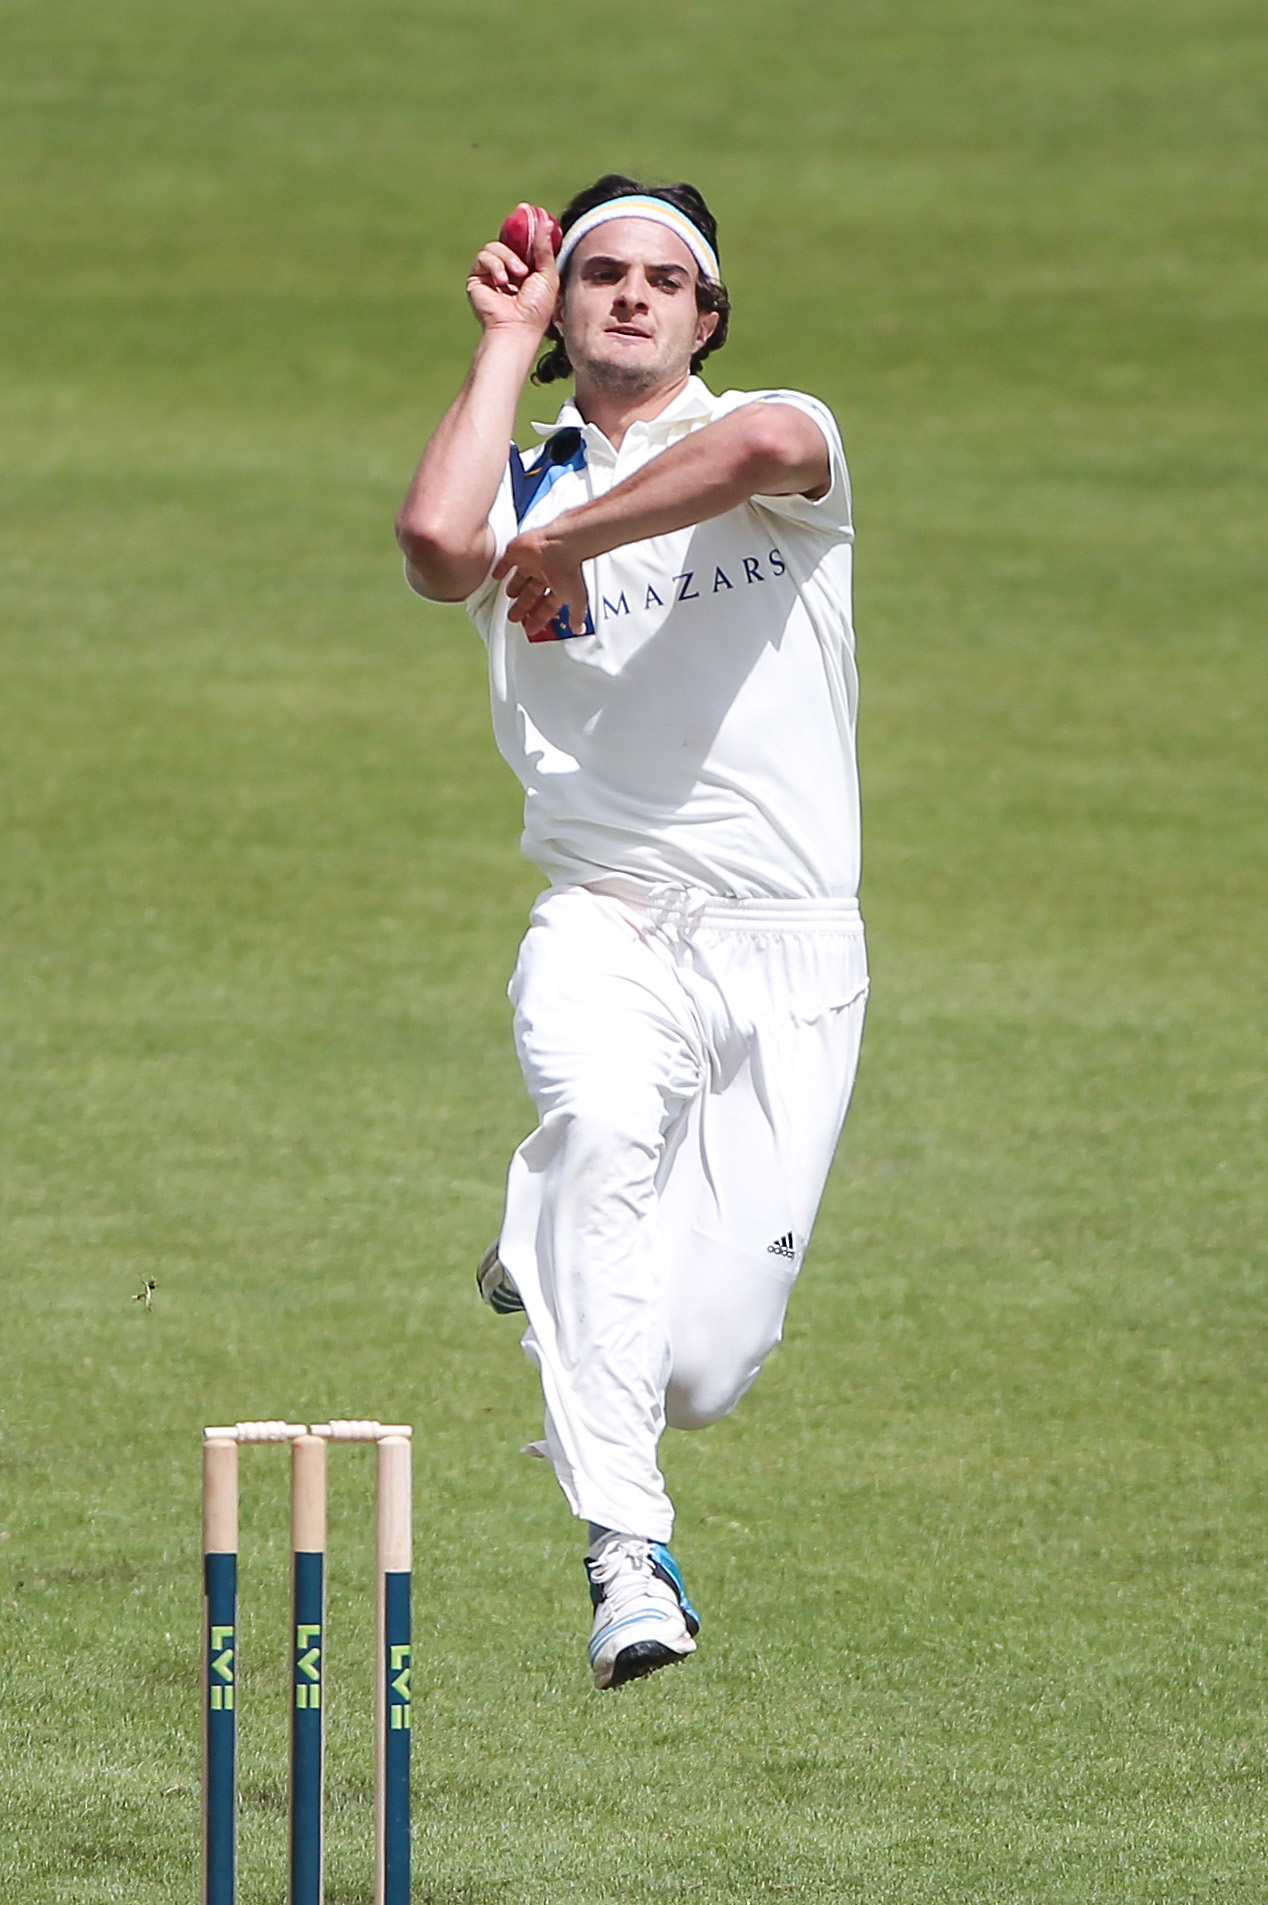 Yorkshire bowler Jack Brooks